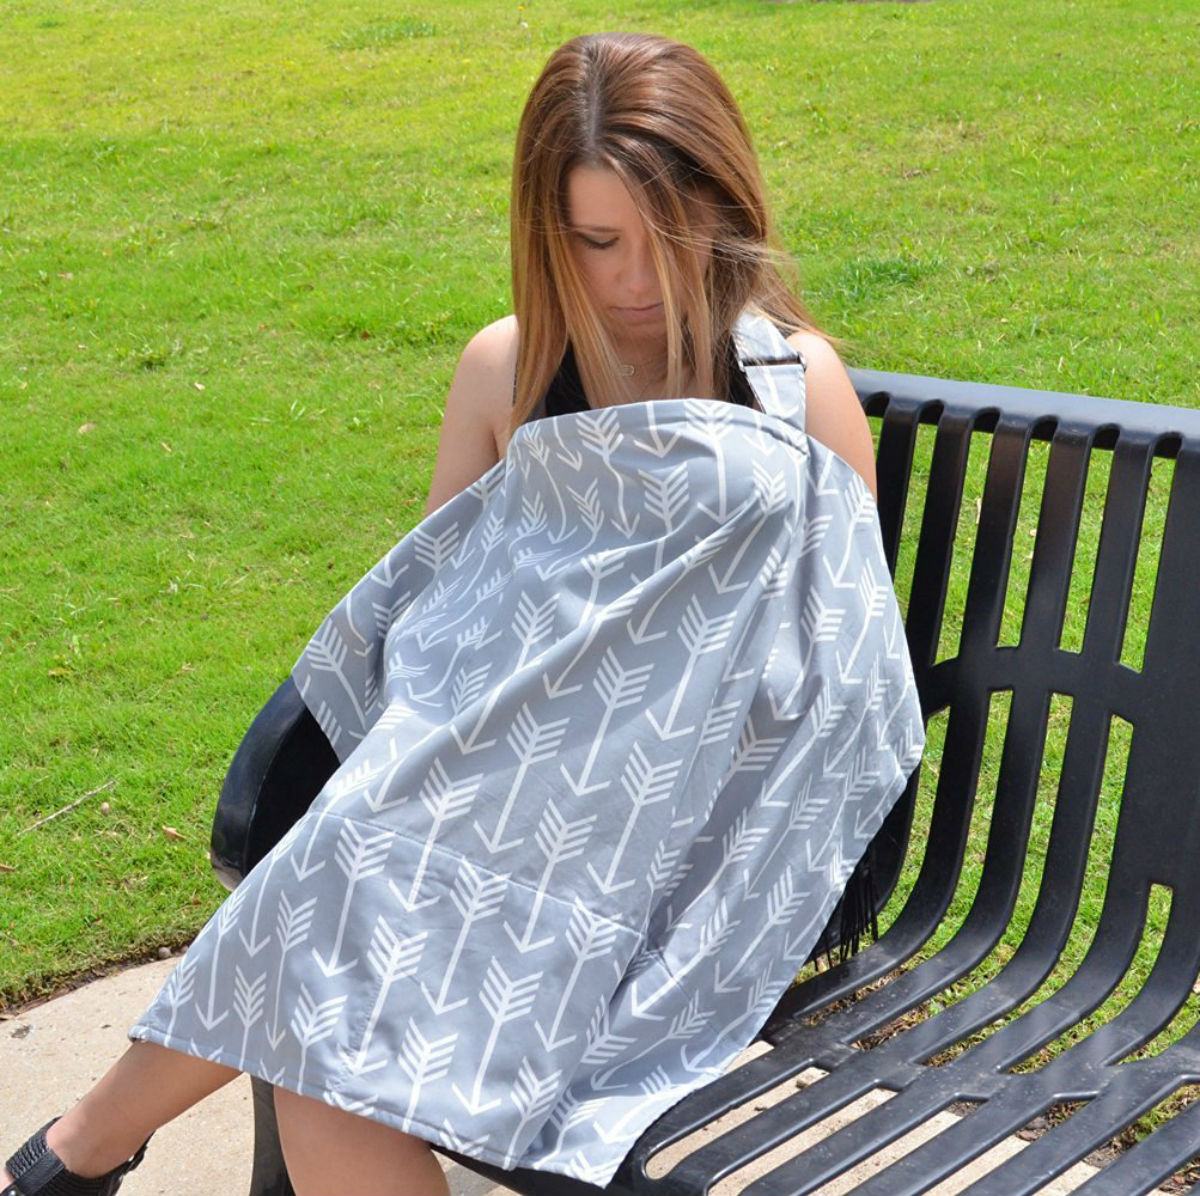 Nursing cover featured